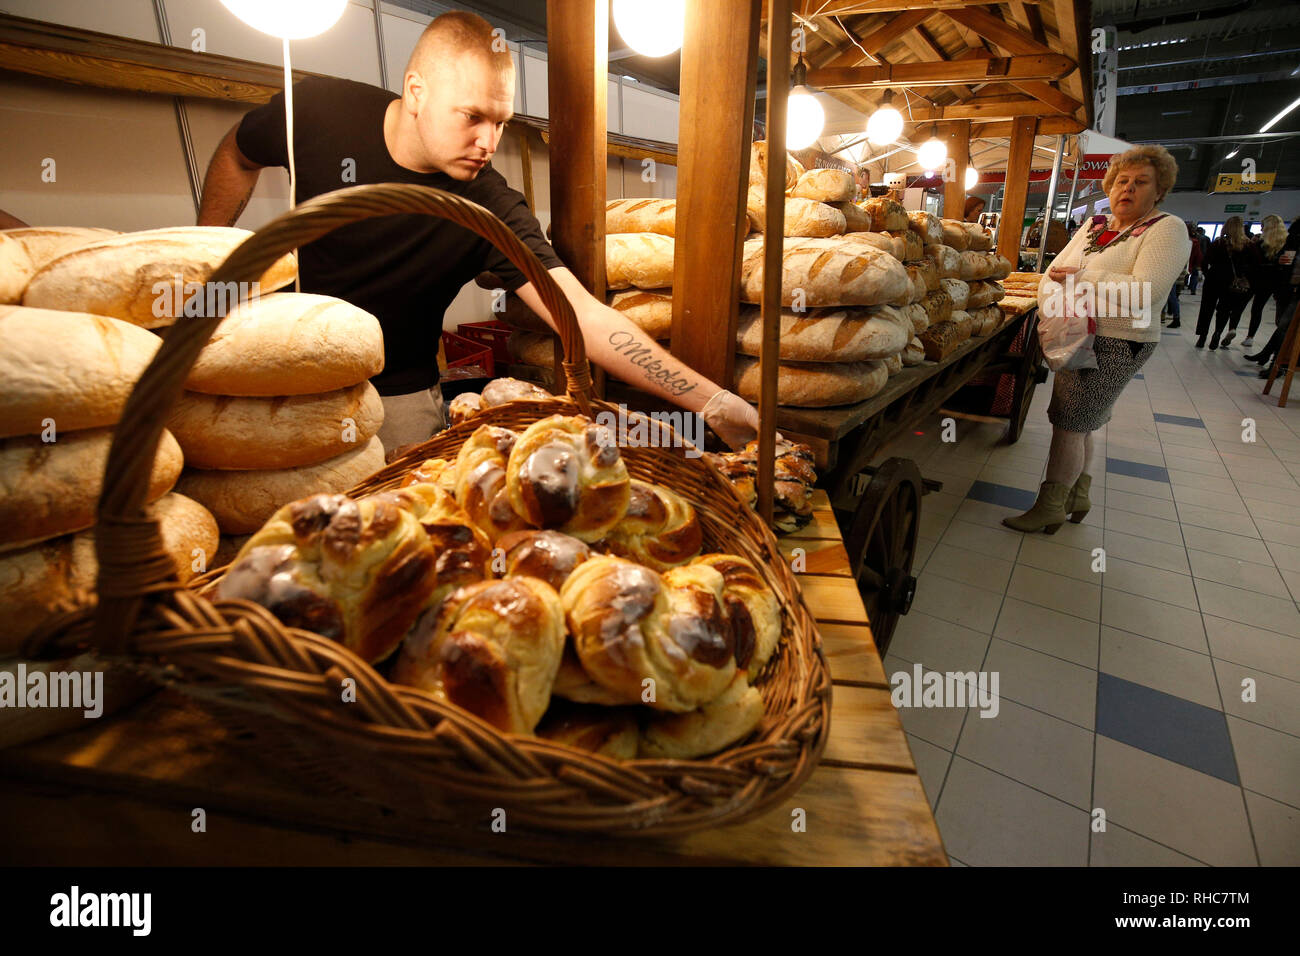 Warsaw, Poland  1st Feb, 2019  A woman selects freshly-baked pastry